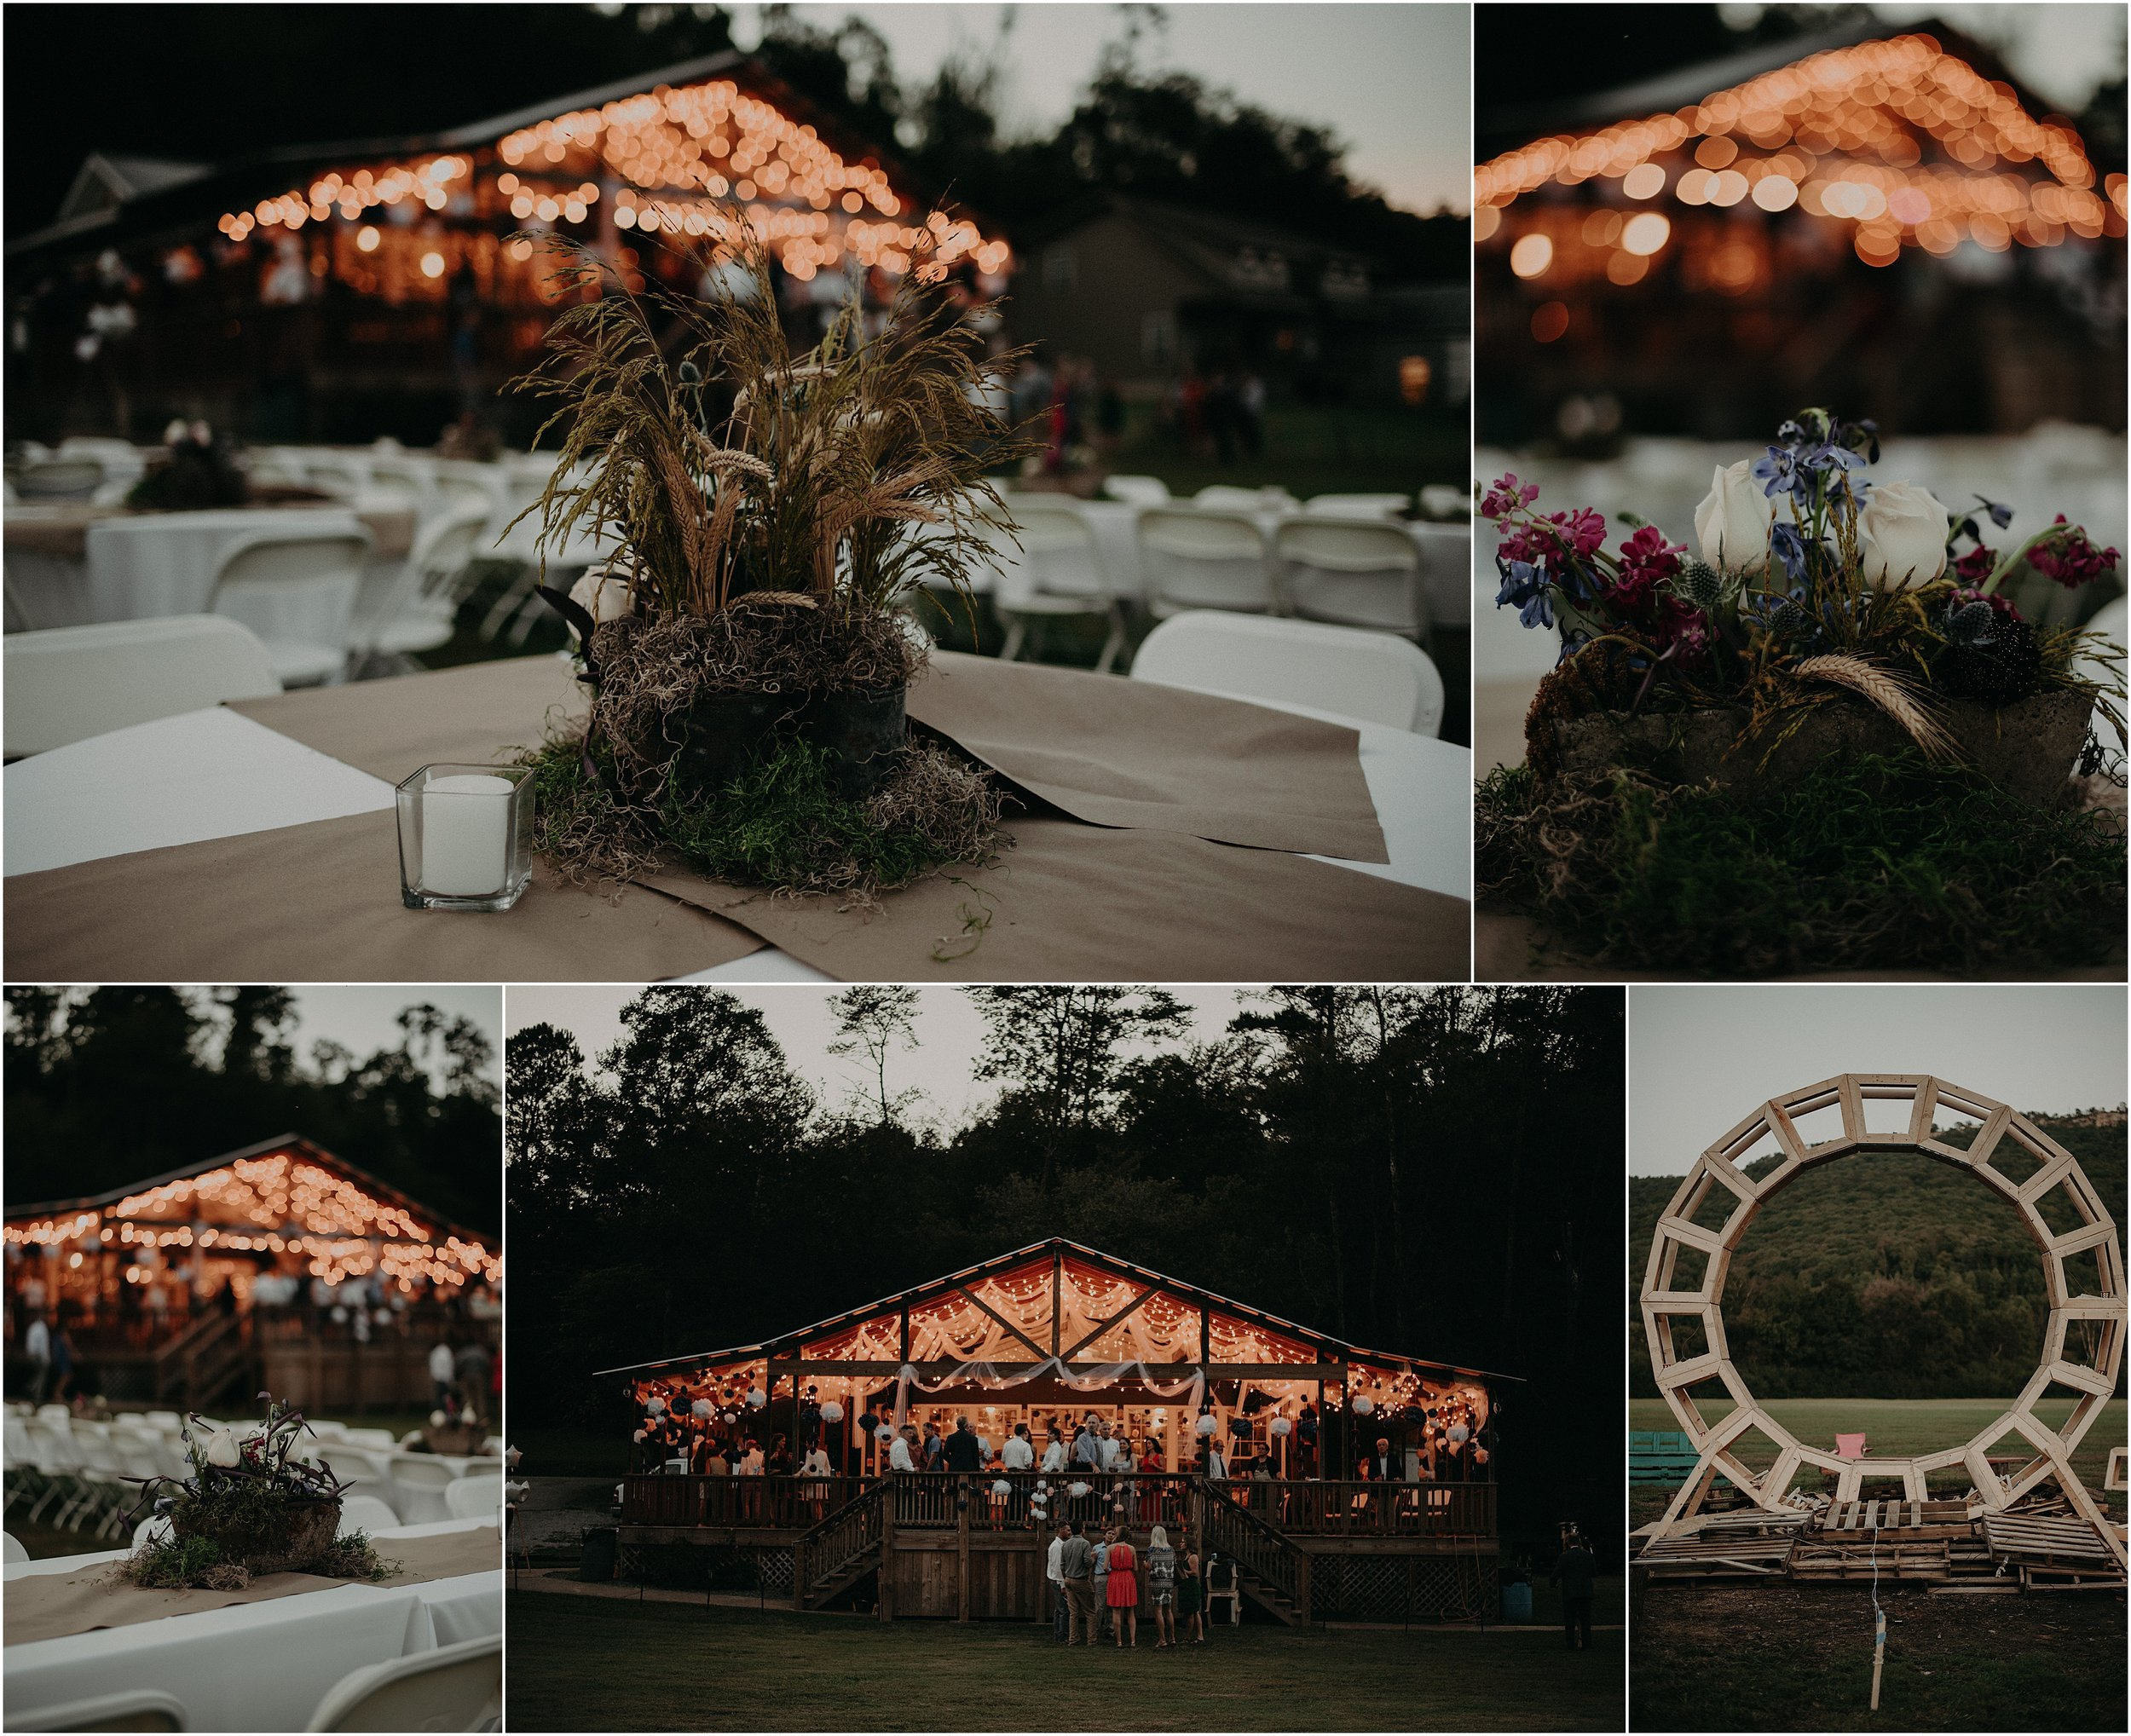 Reception details inspired by wildflowers and fire features at this Lookout Mountain Hang-gliding School wedding